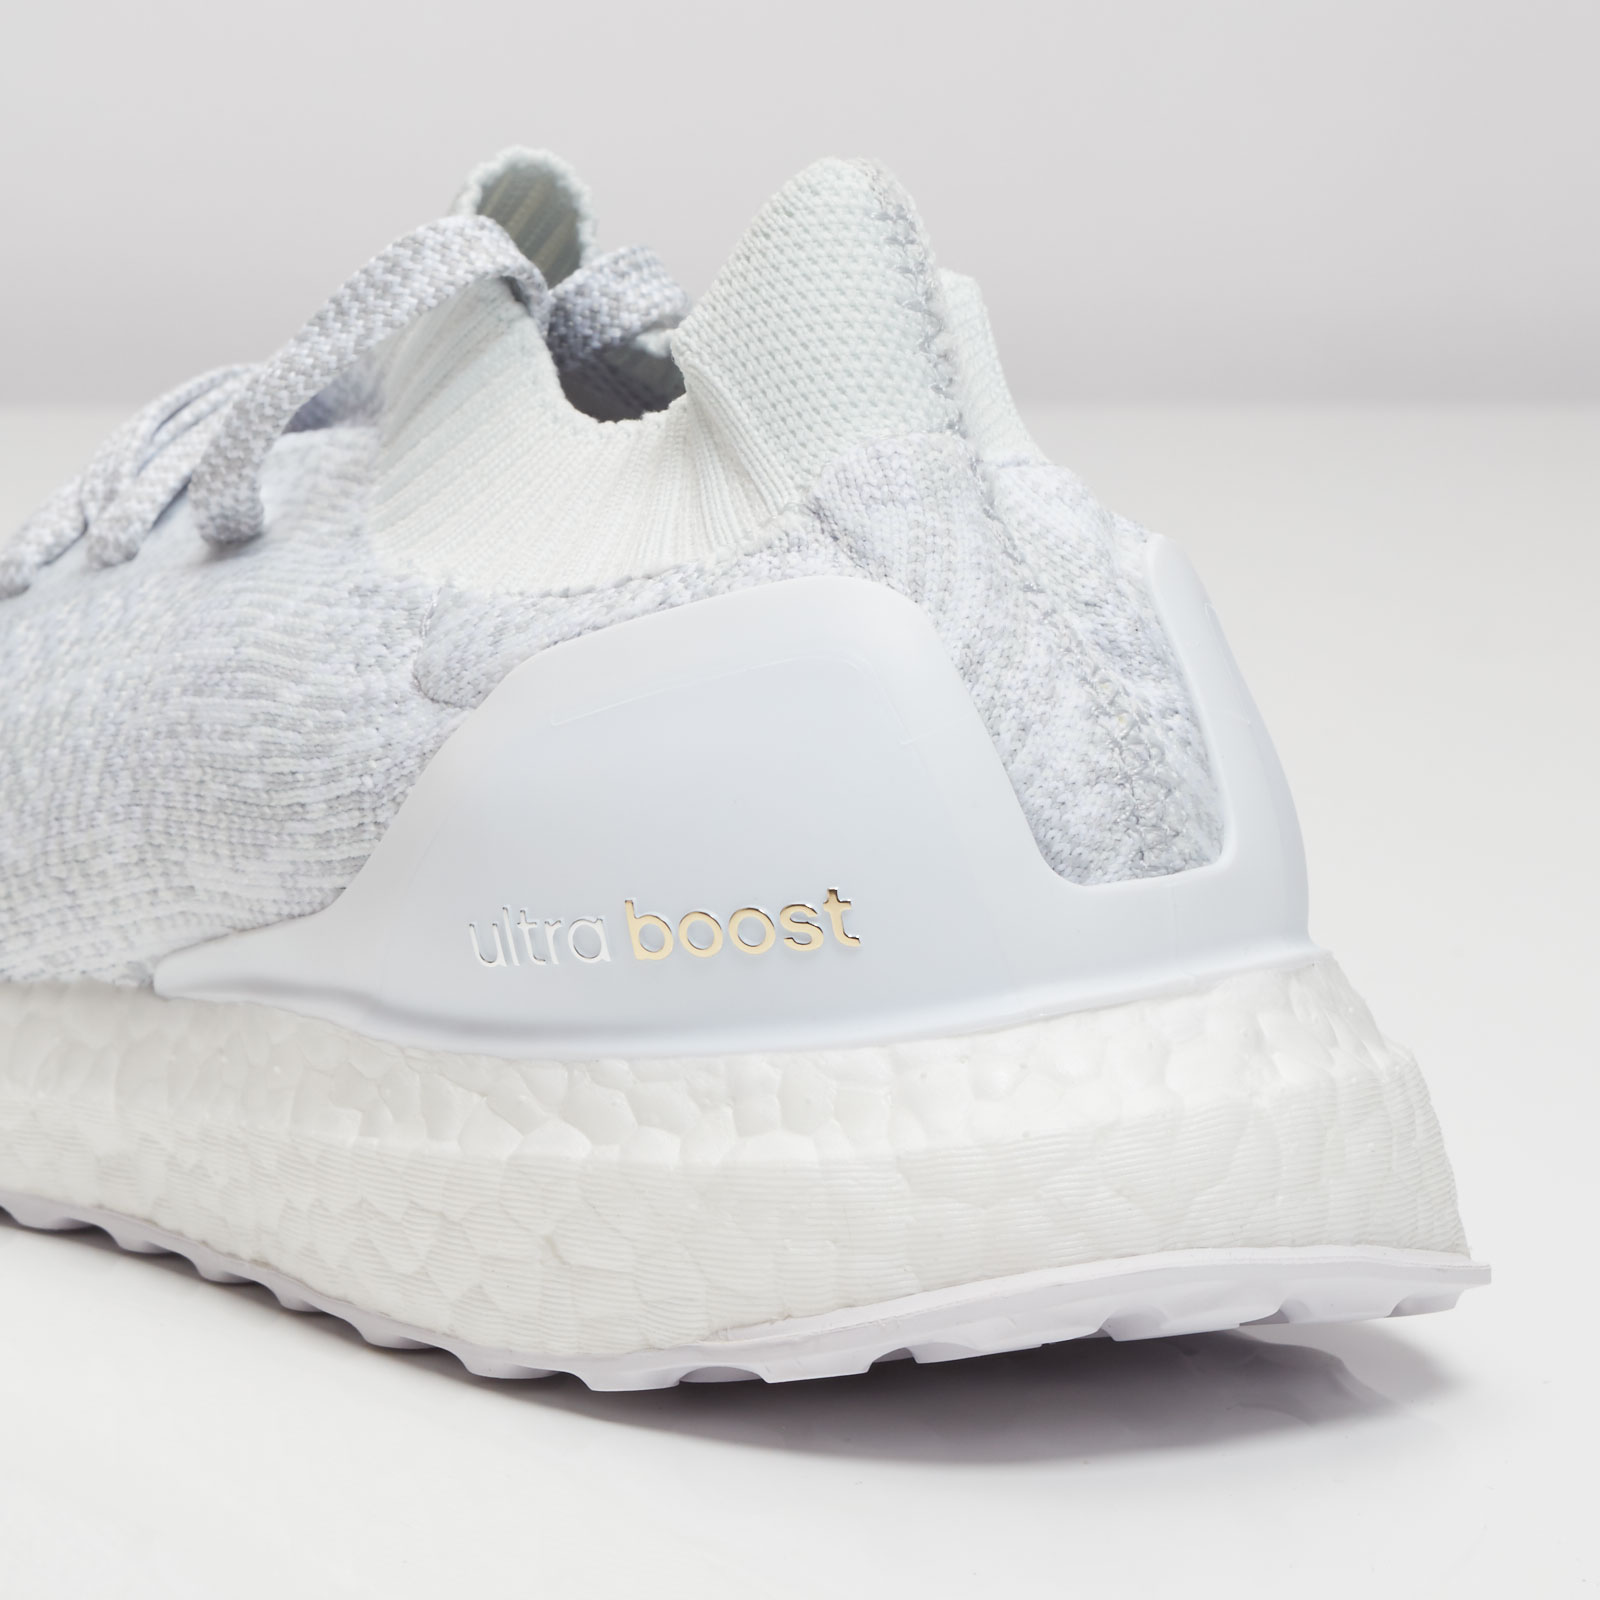 buy online d036e e0fa3 adidas Ultra Boost Uncaged - Bb0773 - Sneakersnstuff ...